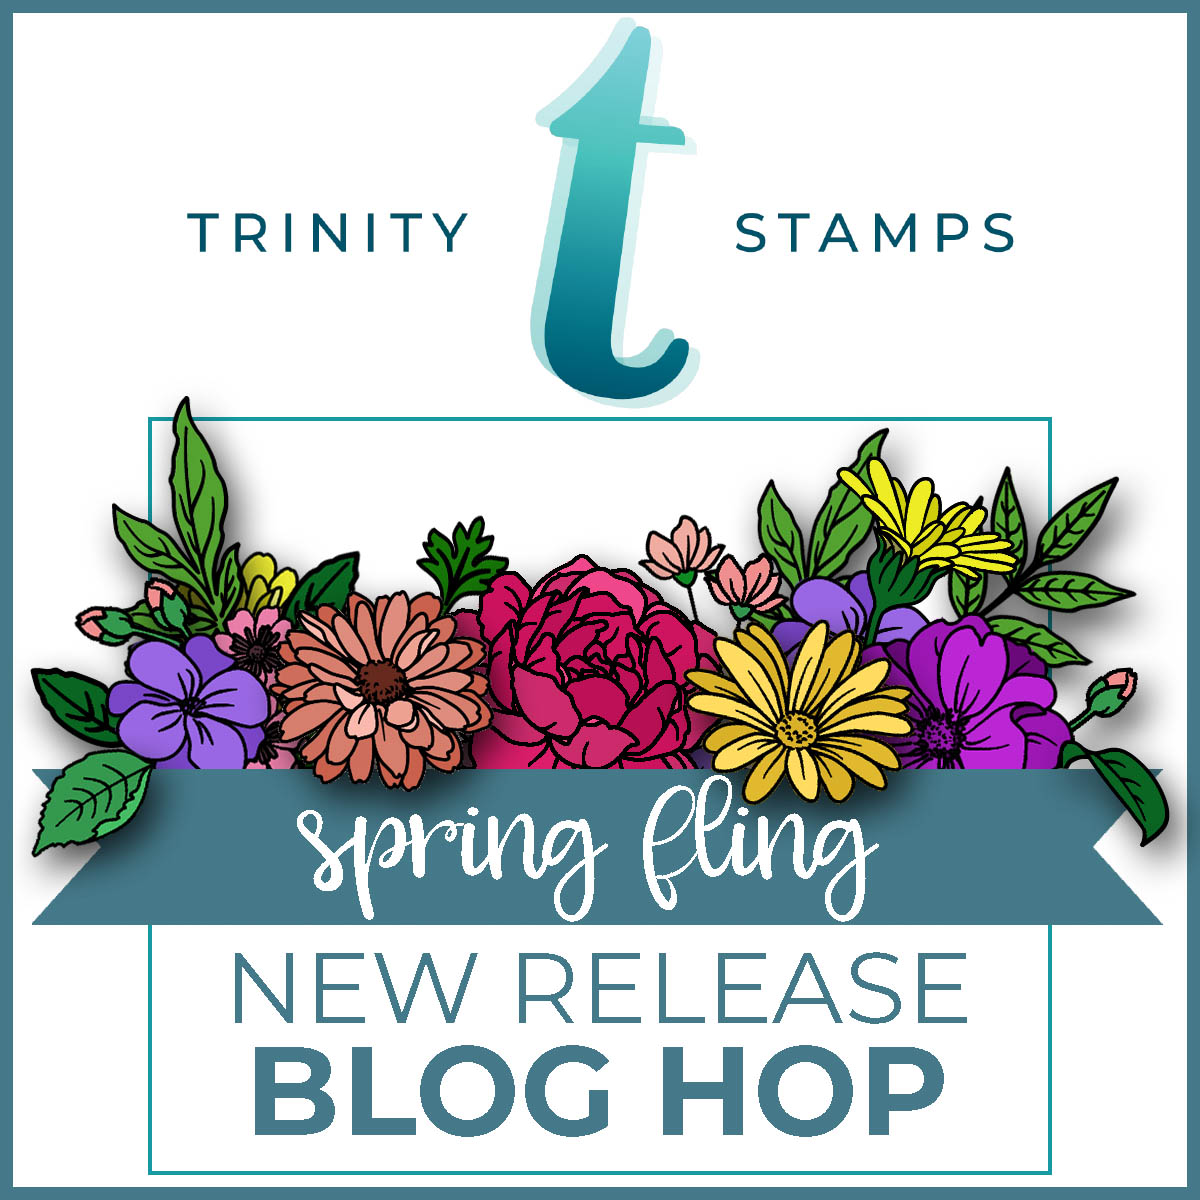 Spring Fling New Release Blog Hop! – Trinity Stamps